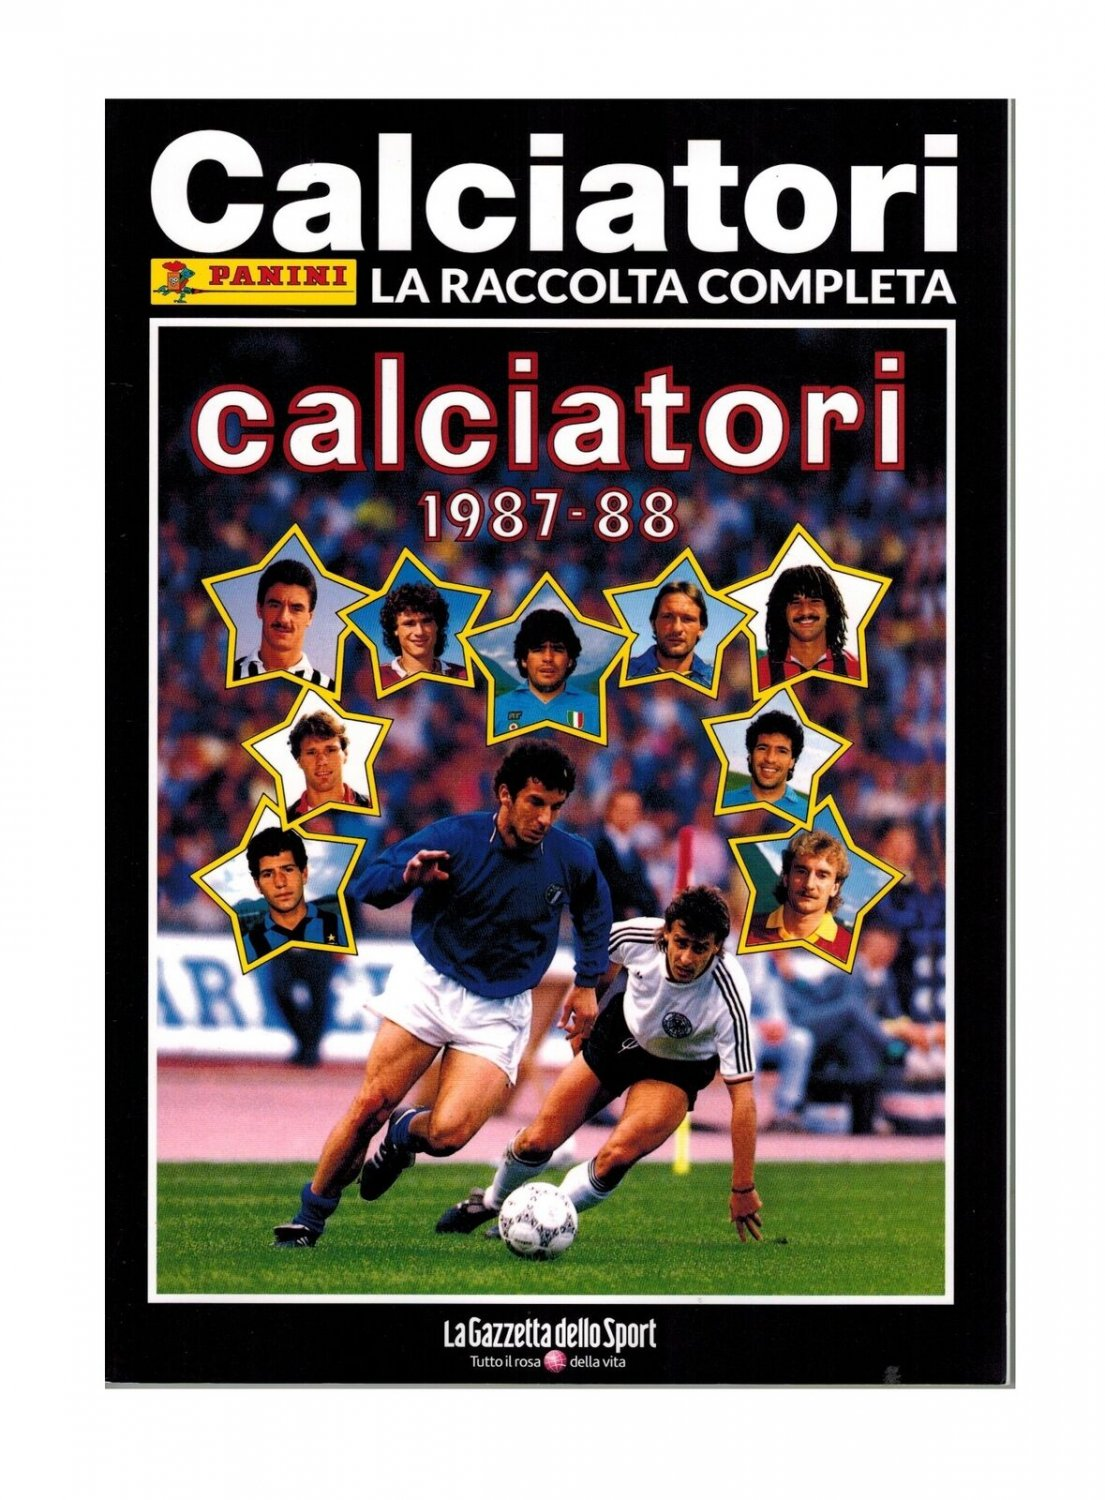 Calciatori 1987-88 Reprint Album Gazzetta Sport 2018 edition